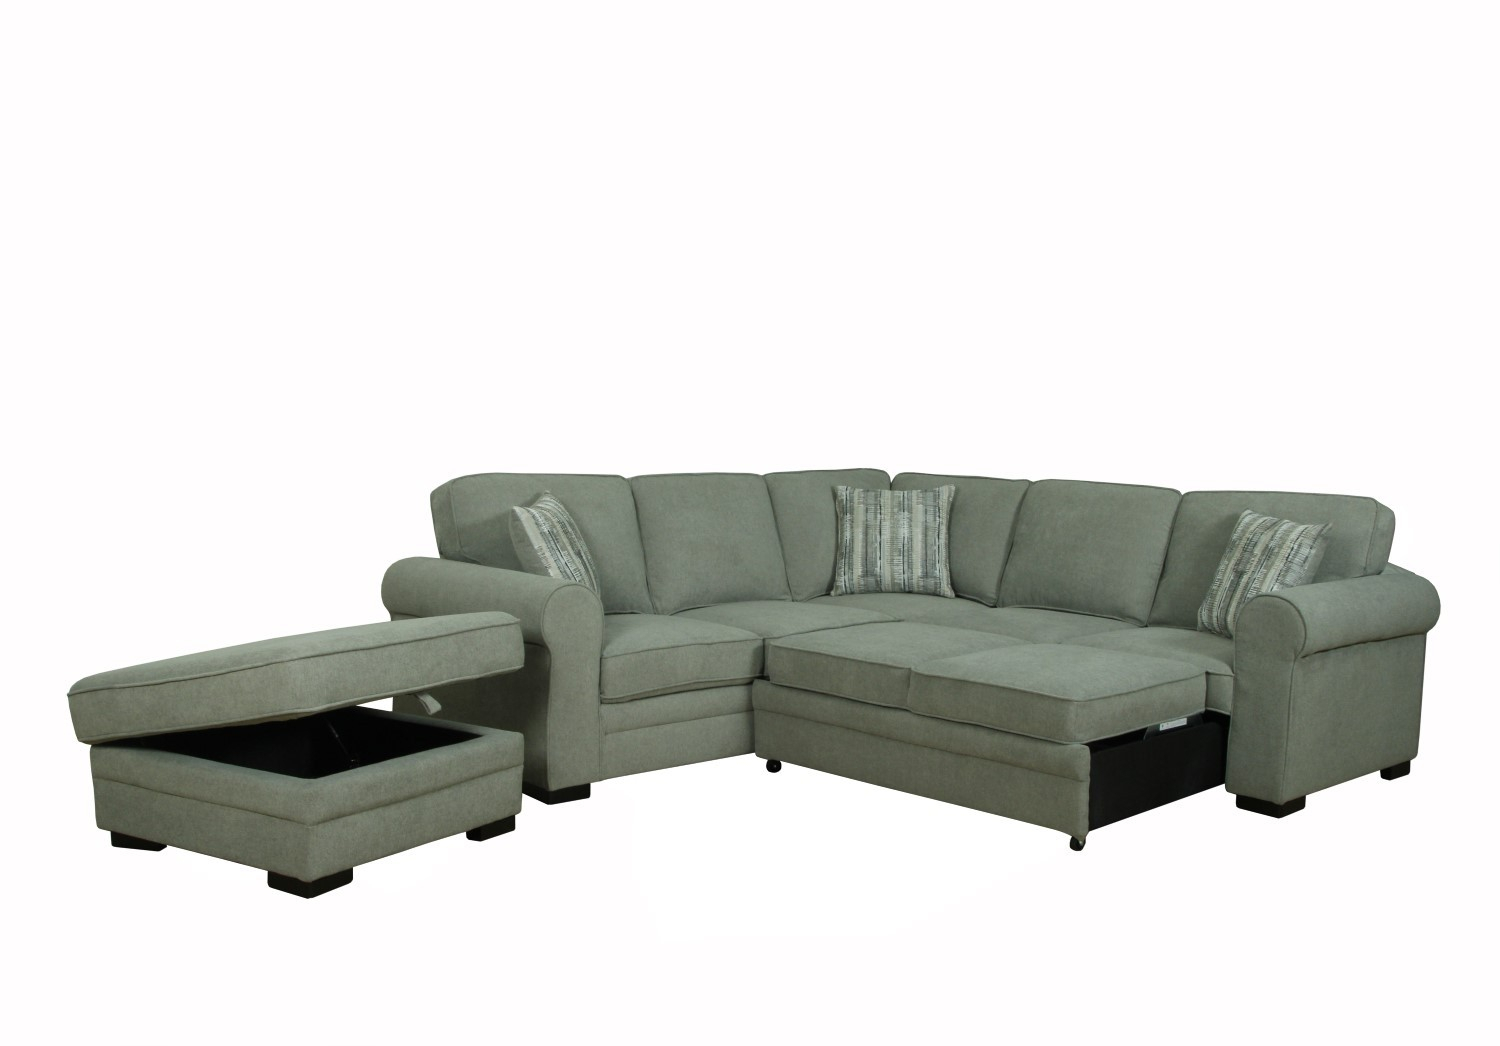 Abigail Sectional | New Year's Sale On 500+ Products In Abigail Ii Sofa Chairs (View 23 of 25)